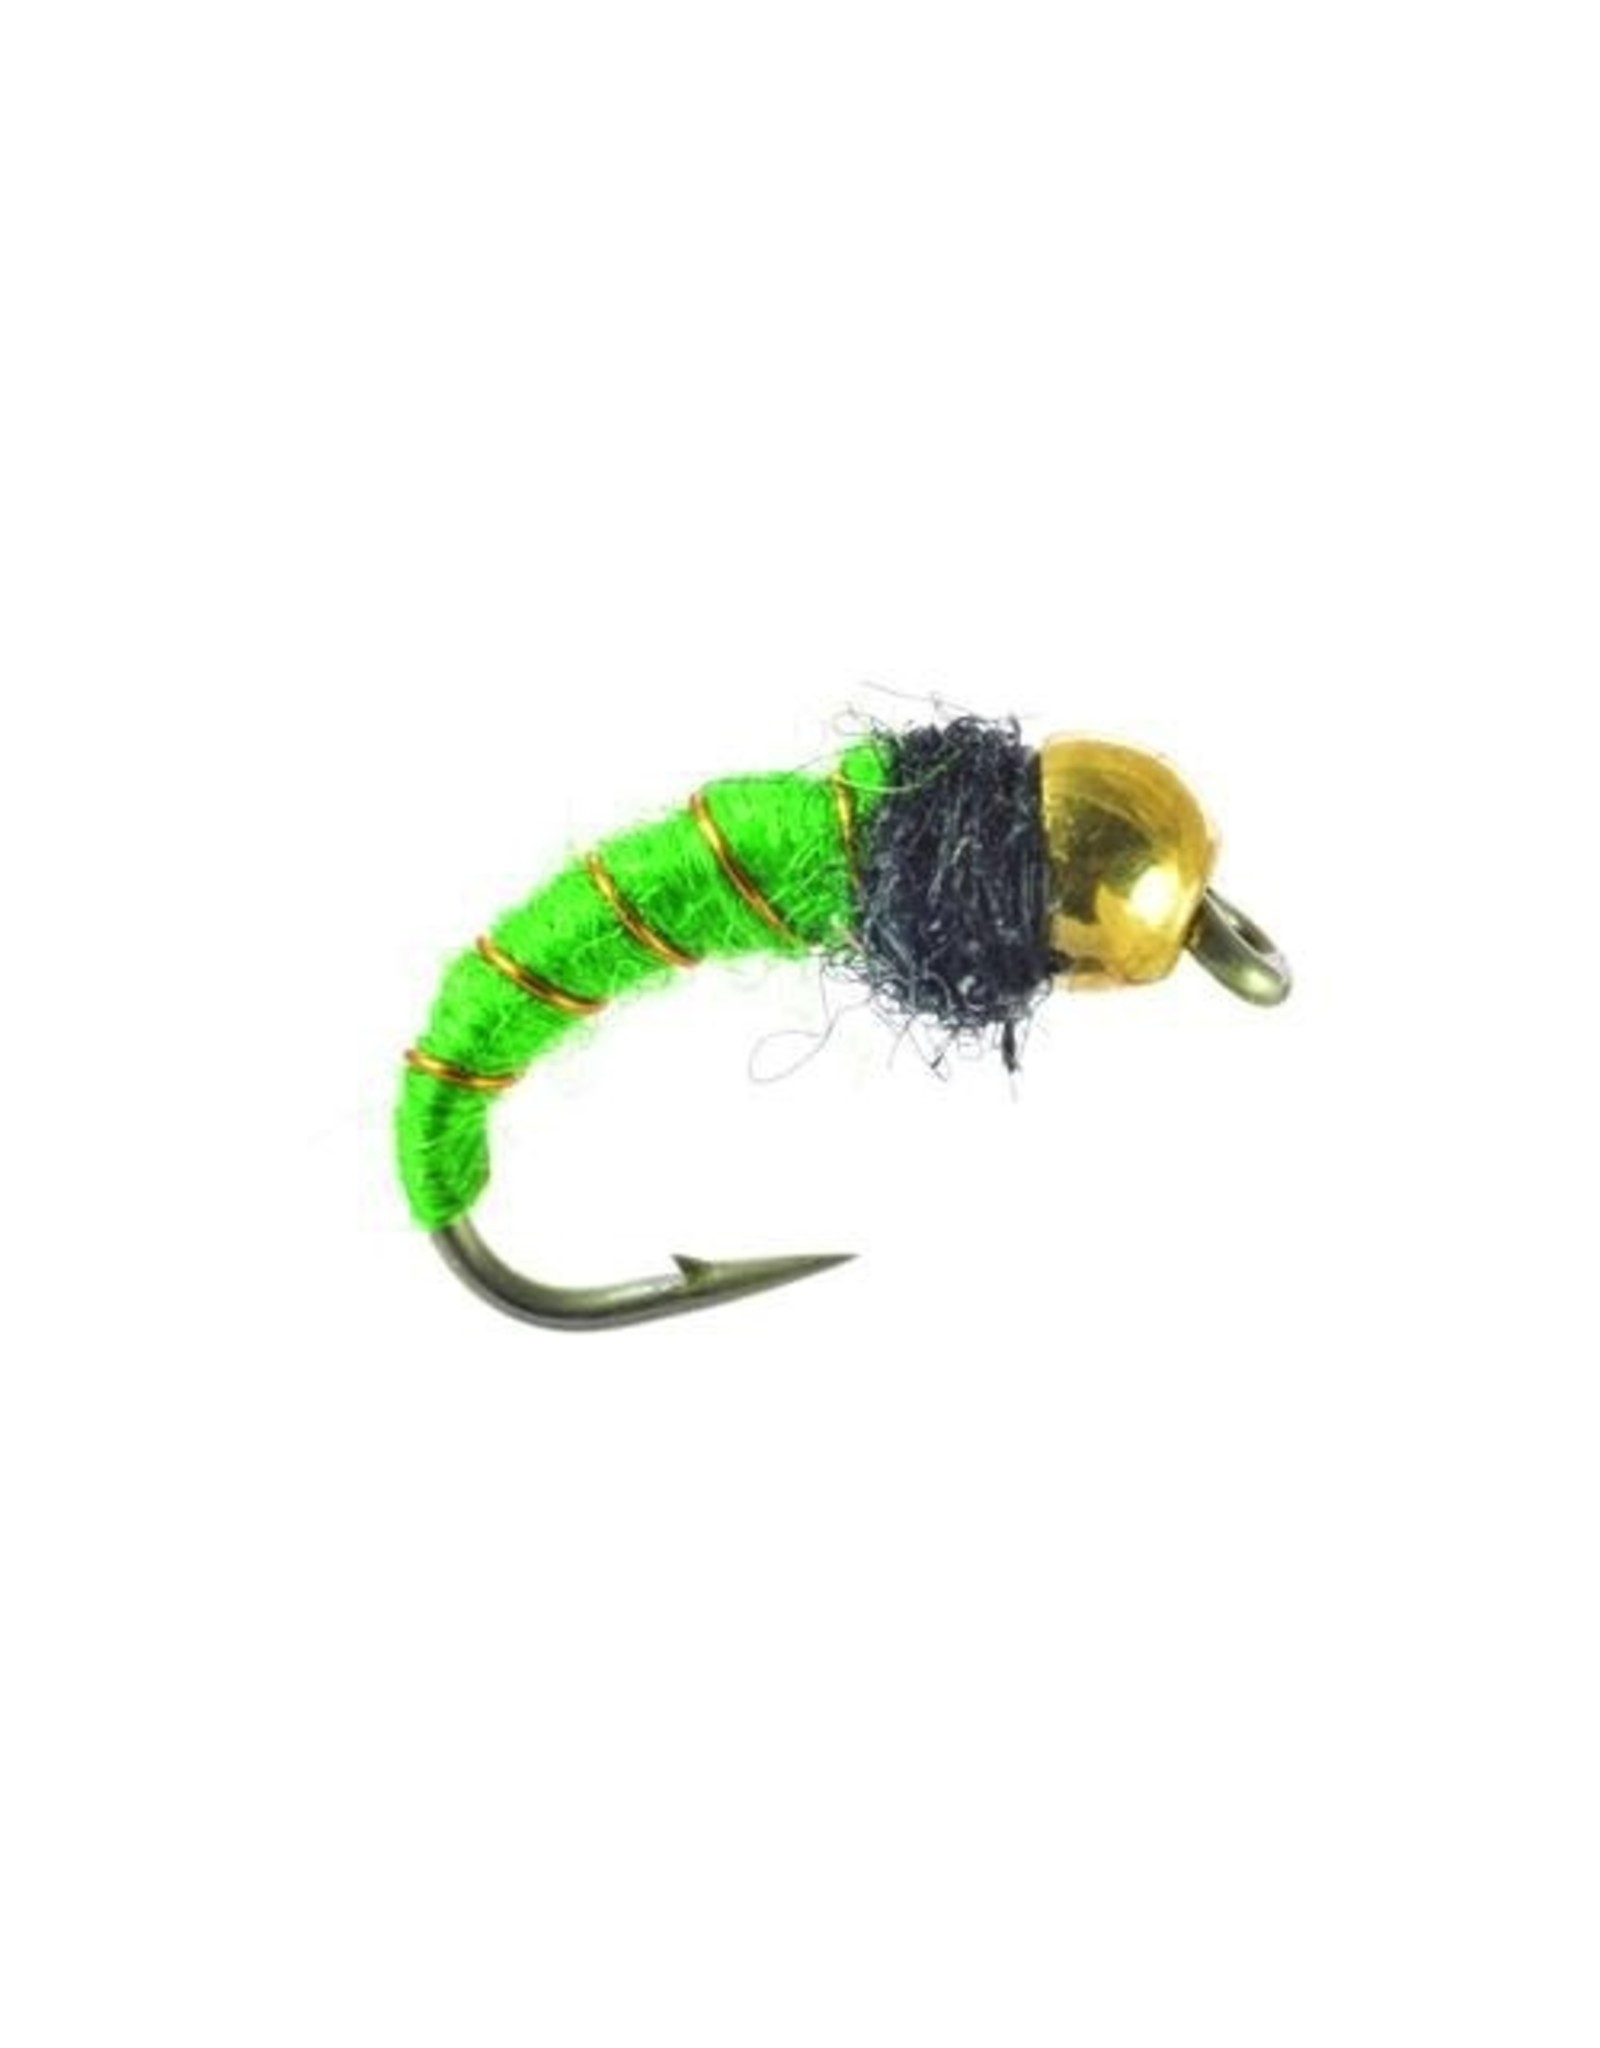 Umpqua Caddis Larva Bead Head (3 Pack)